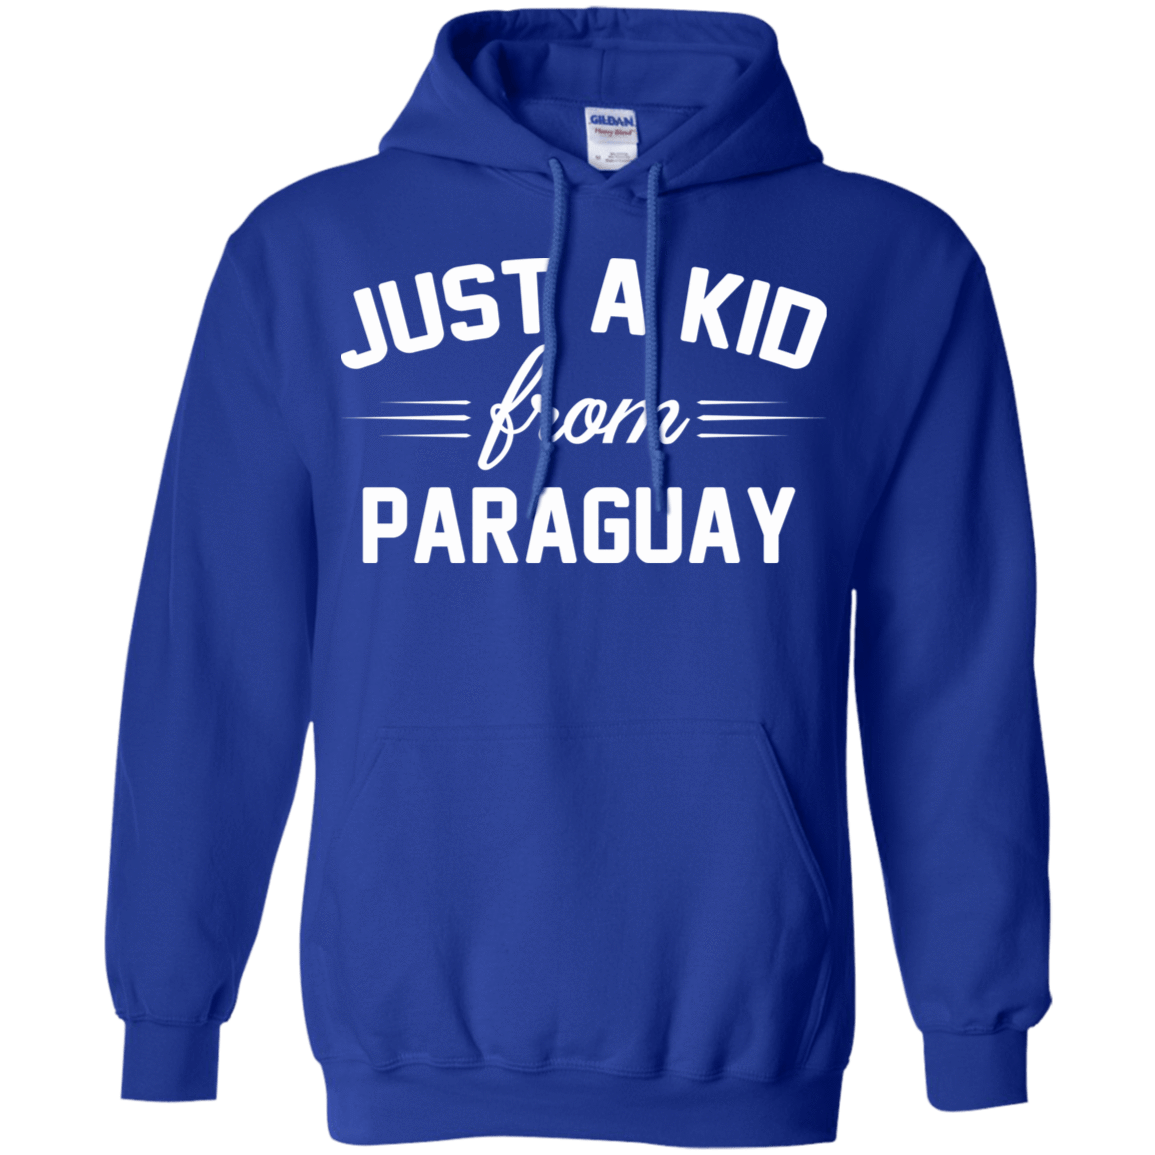 Just a Kid Store | Paraguay T-Shirts, Hoodie, Tank 541-4765-72091580-23175 - Tee Ript